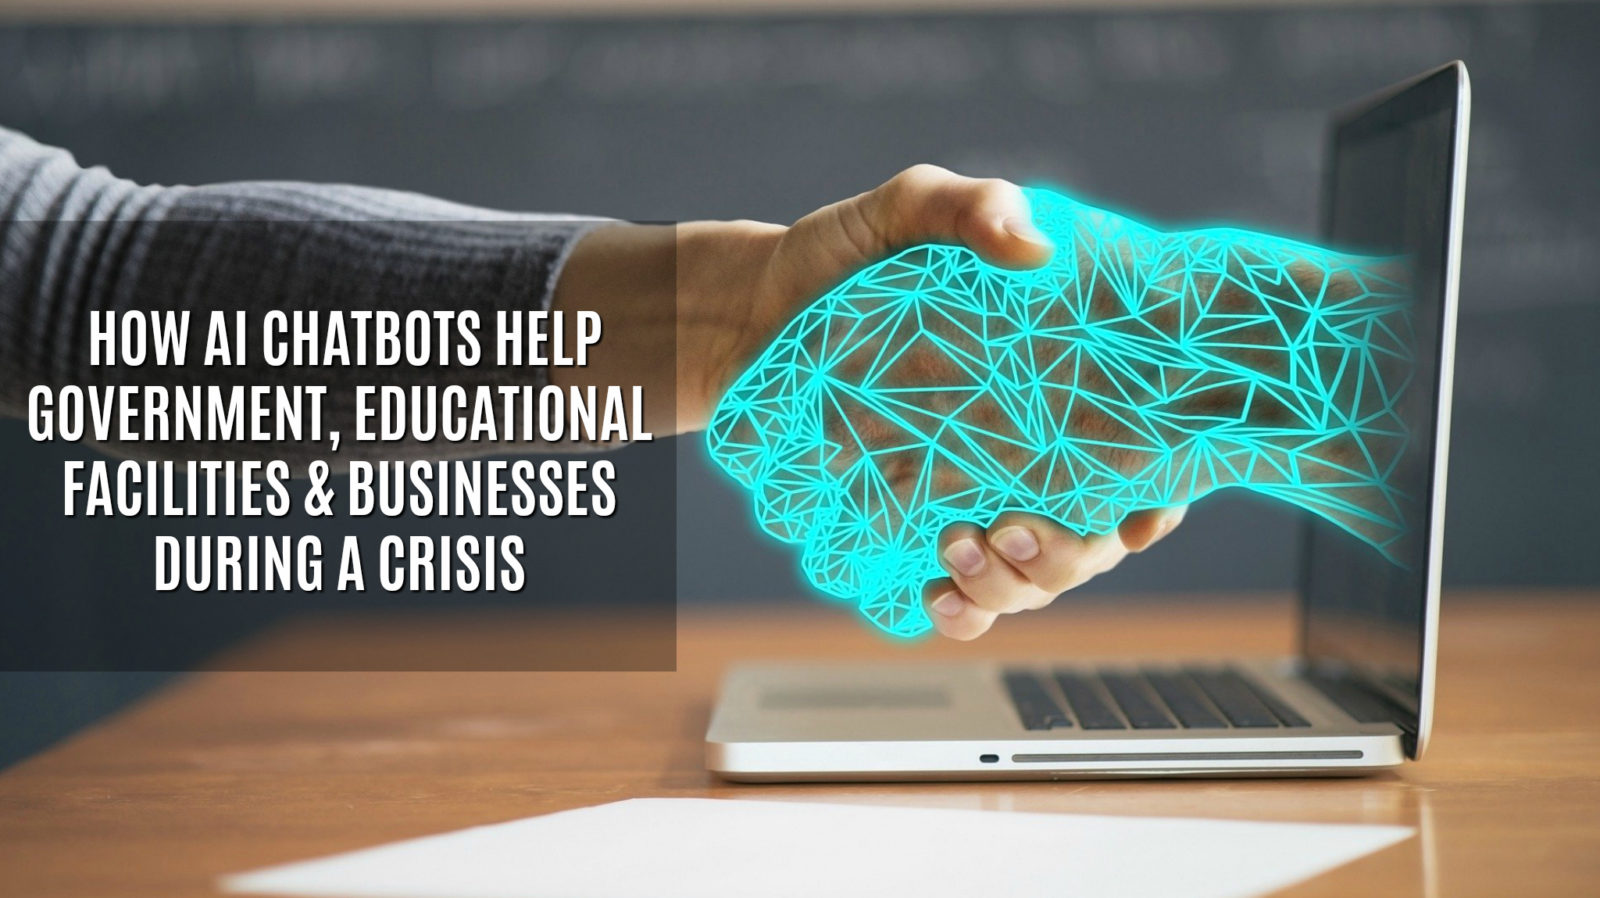 ai chatbots during crisis